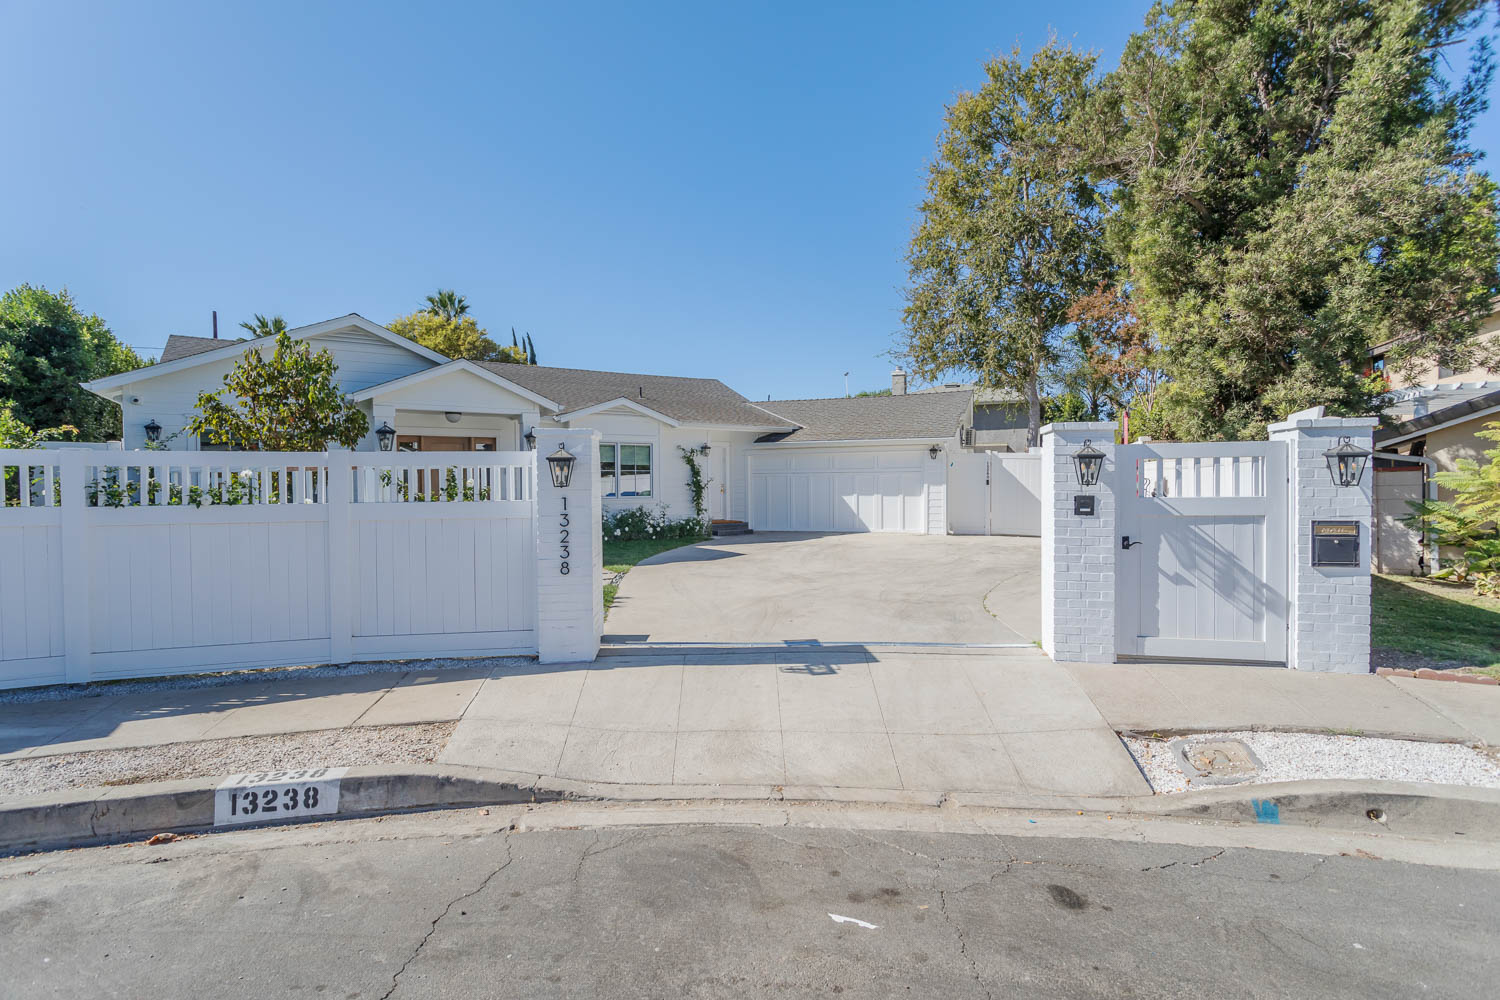 13238 McCormick St-LowRes-5738